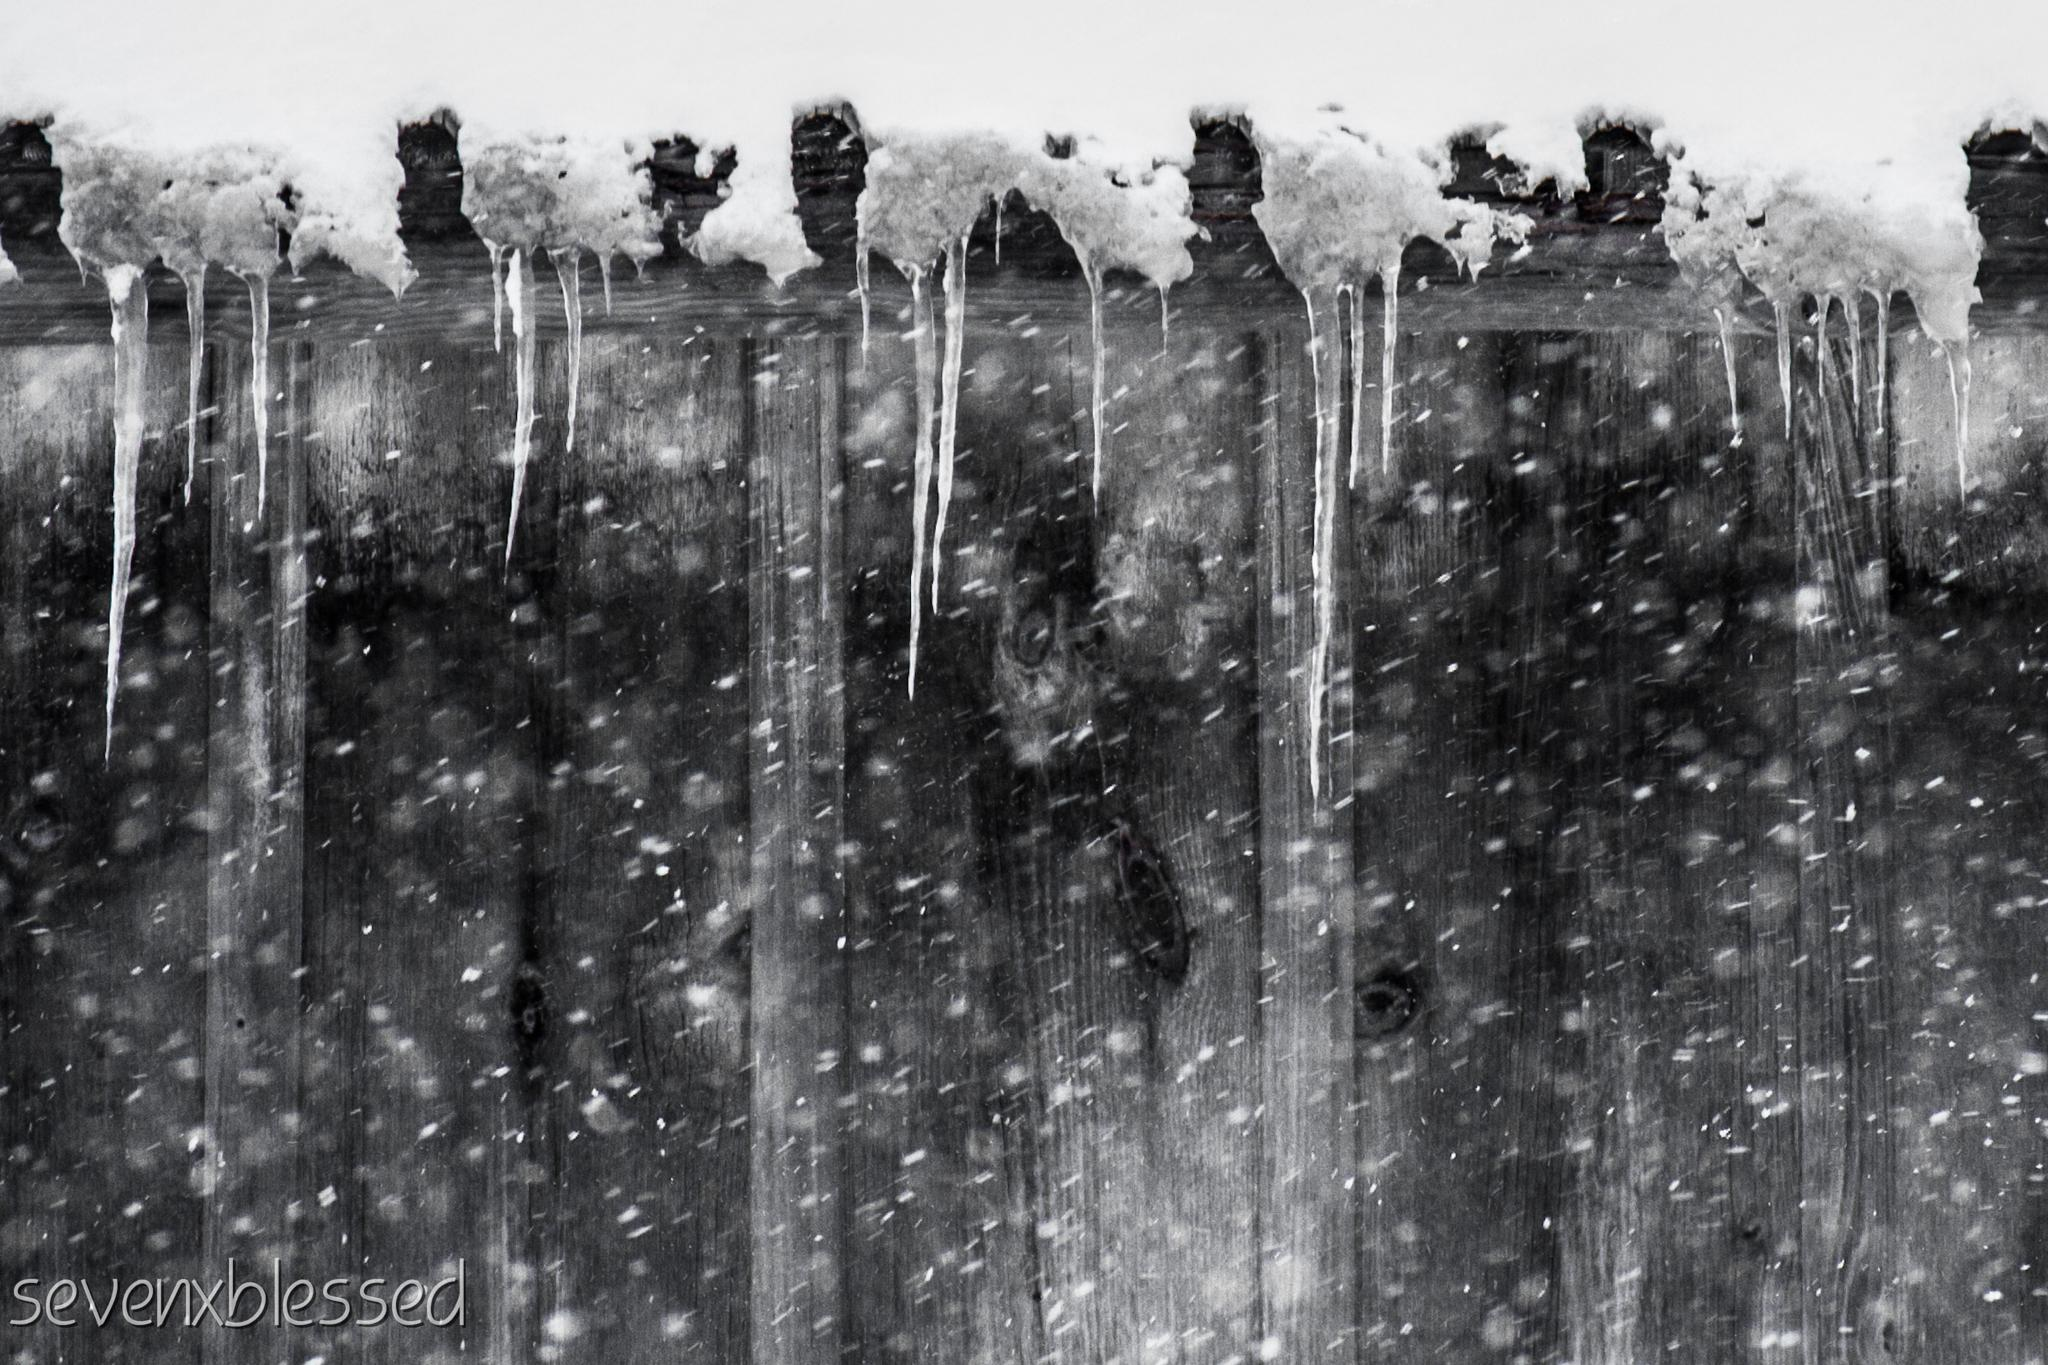 snowflakes and icicles by Michelle Danker